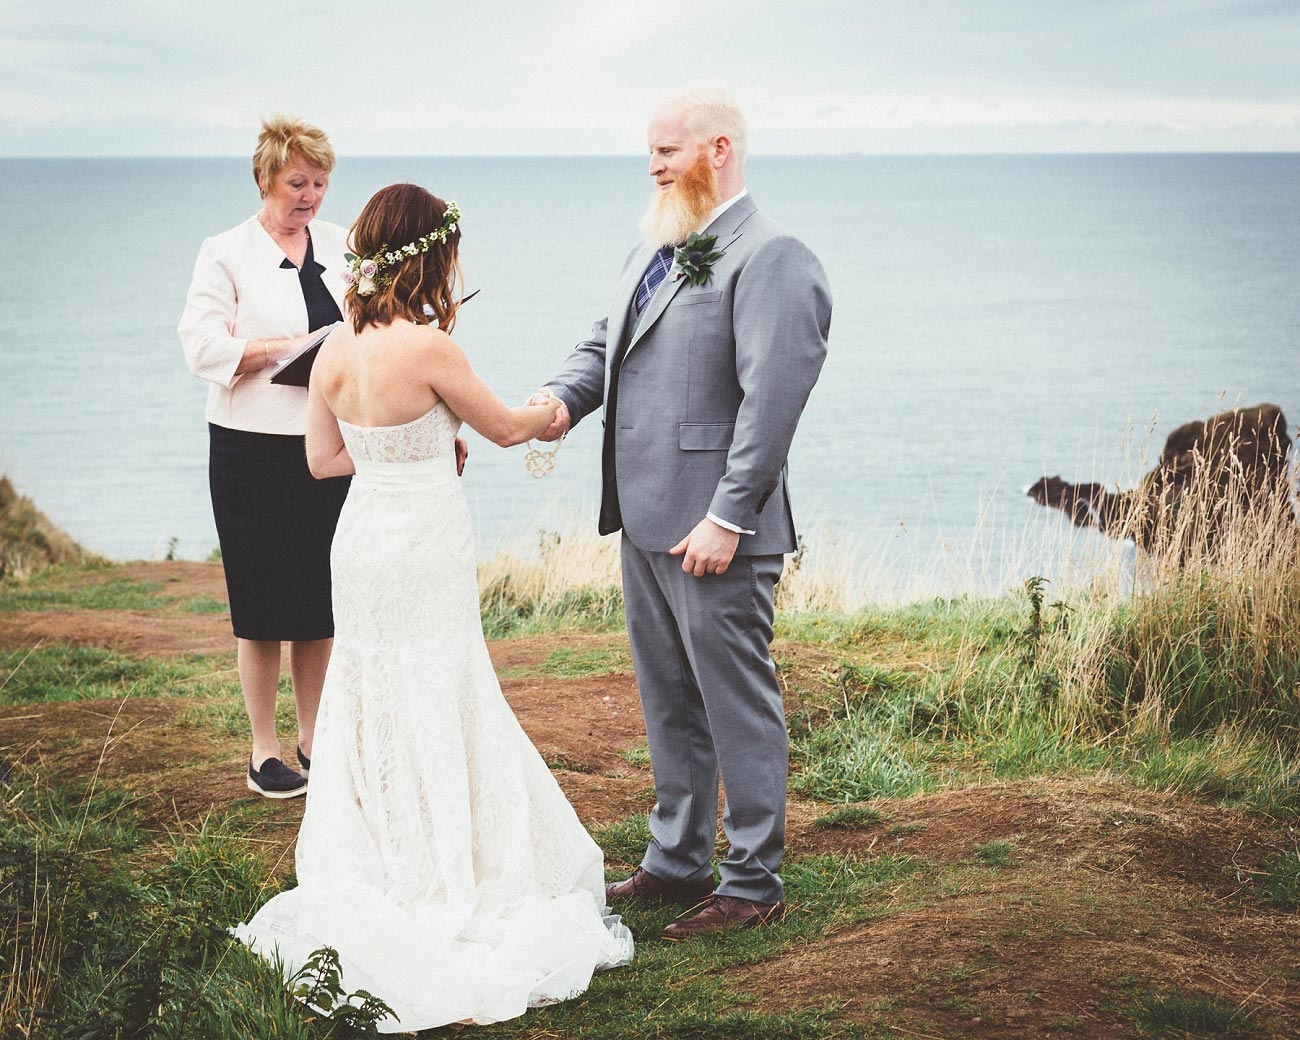 dunnottar castle elopement wedding photographer scotland scottish highlands abderdeenshire aj 0016